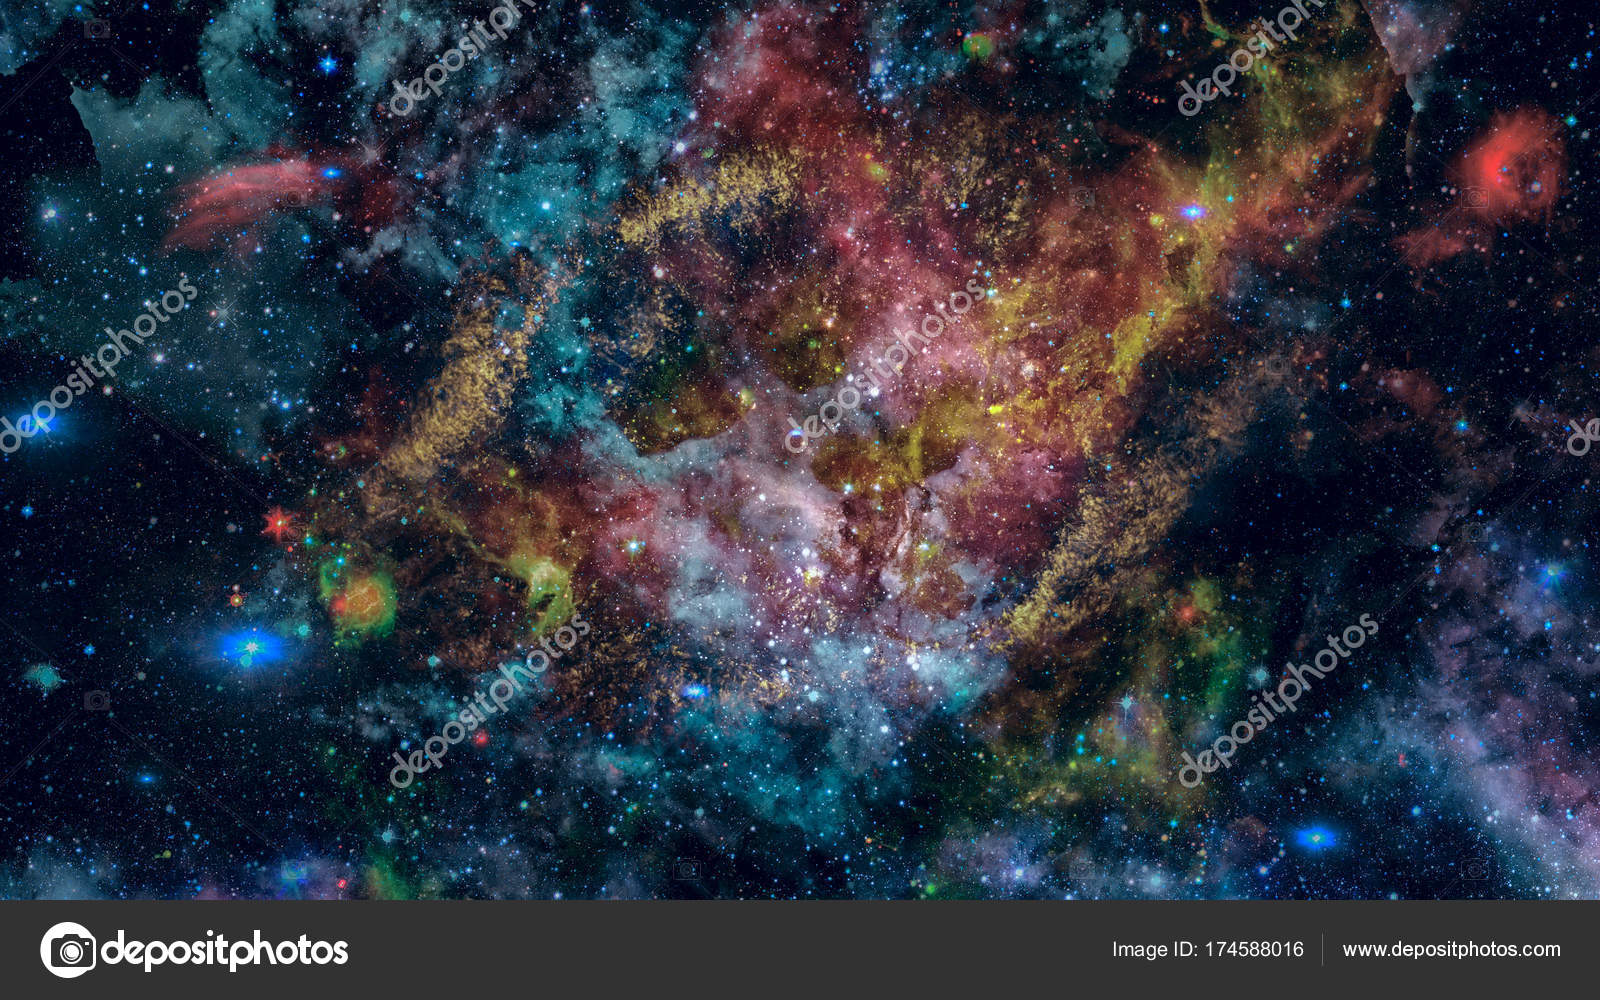 Cosmic Art Science Fiction Wallpaper Beauty Of Deep Space Elements This Image Furnished By NASA Photo NASAimage